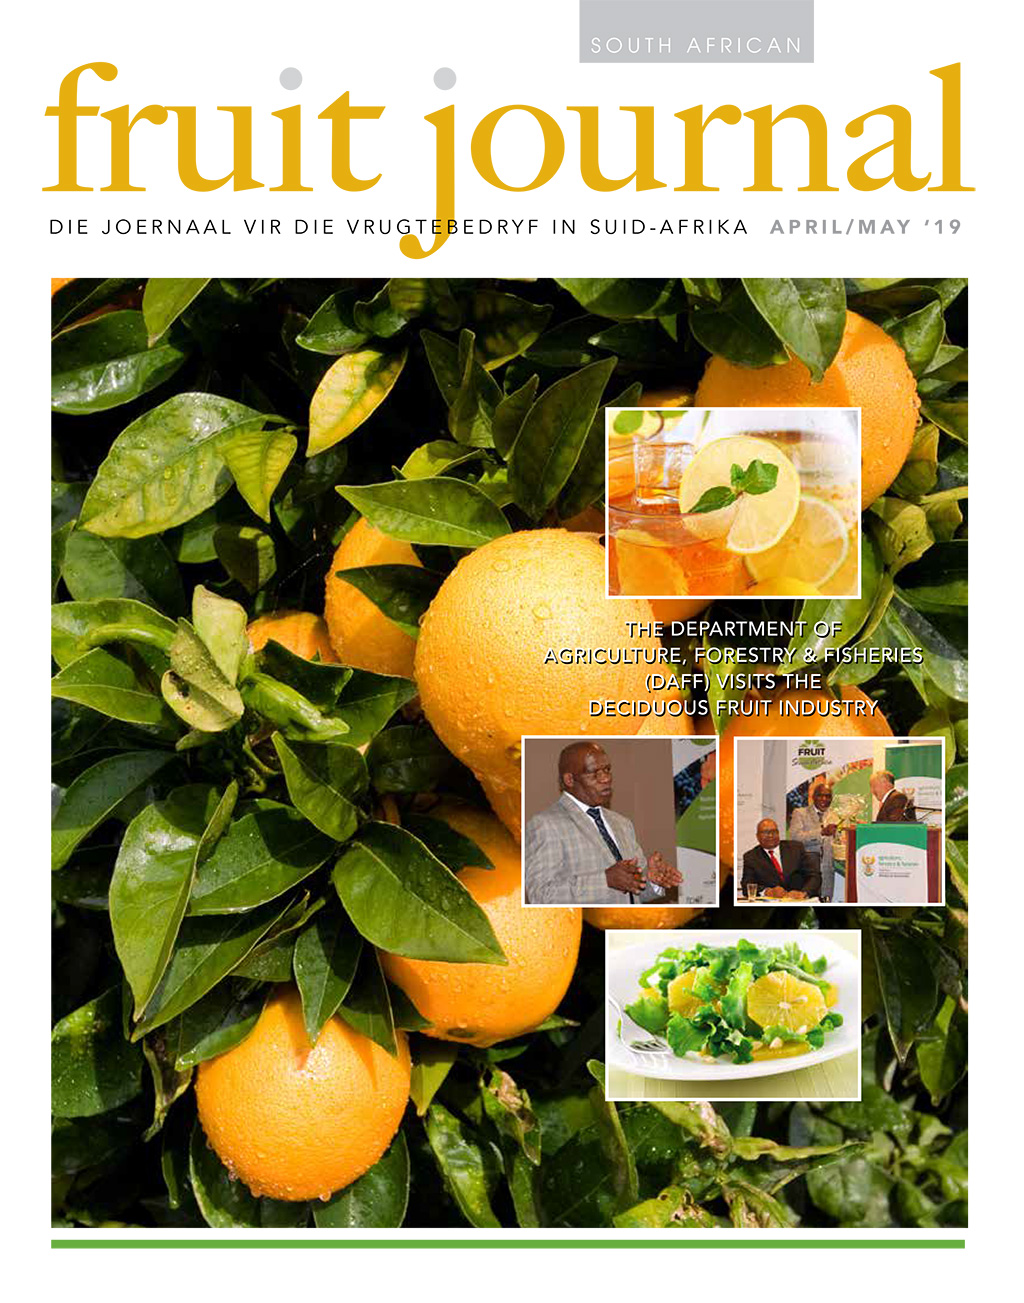 SA Fruit Journal - April May 2019 - Cover